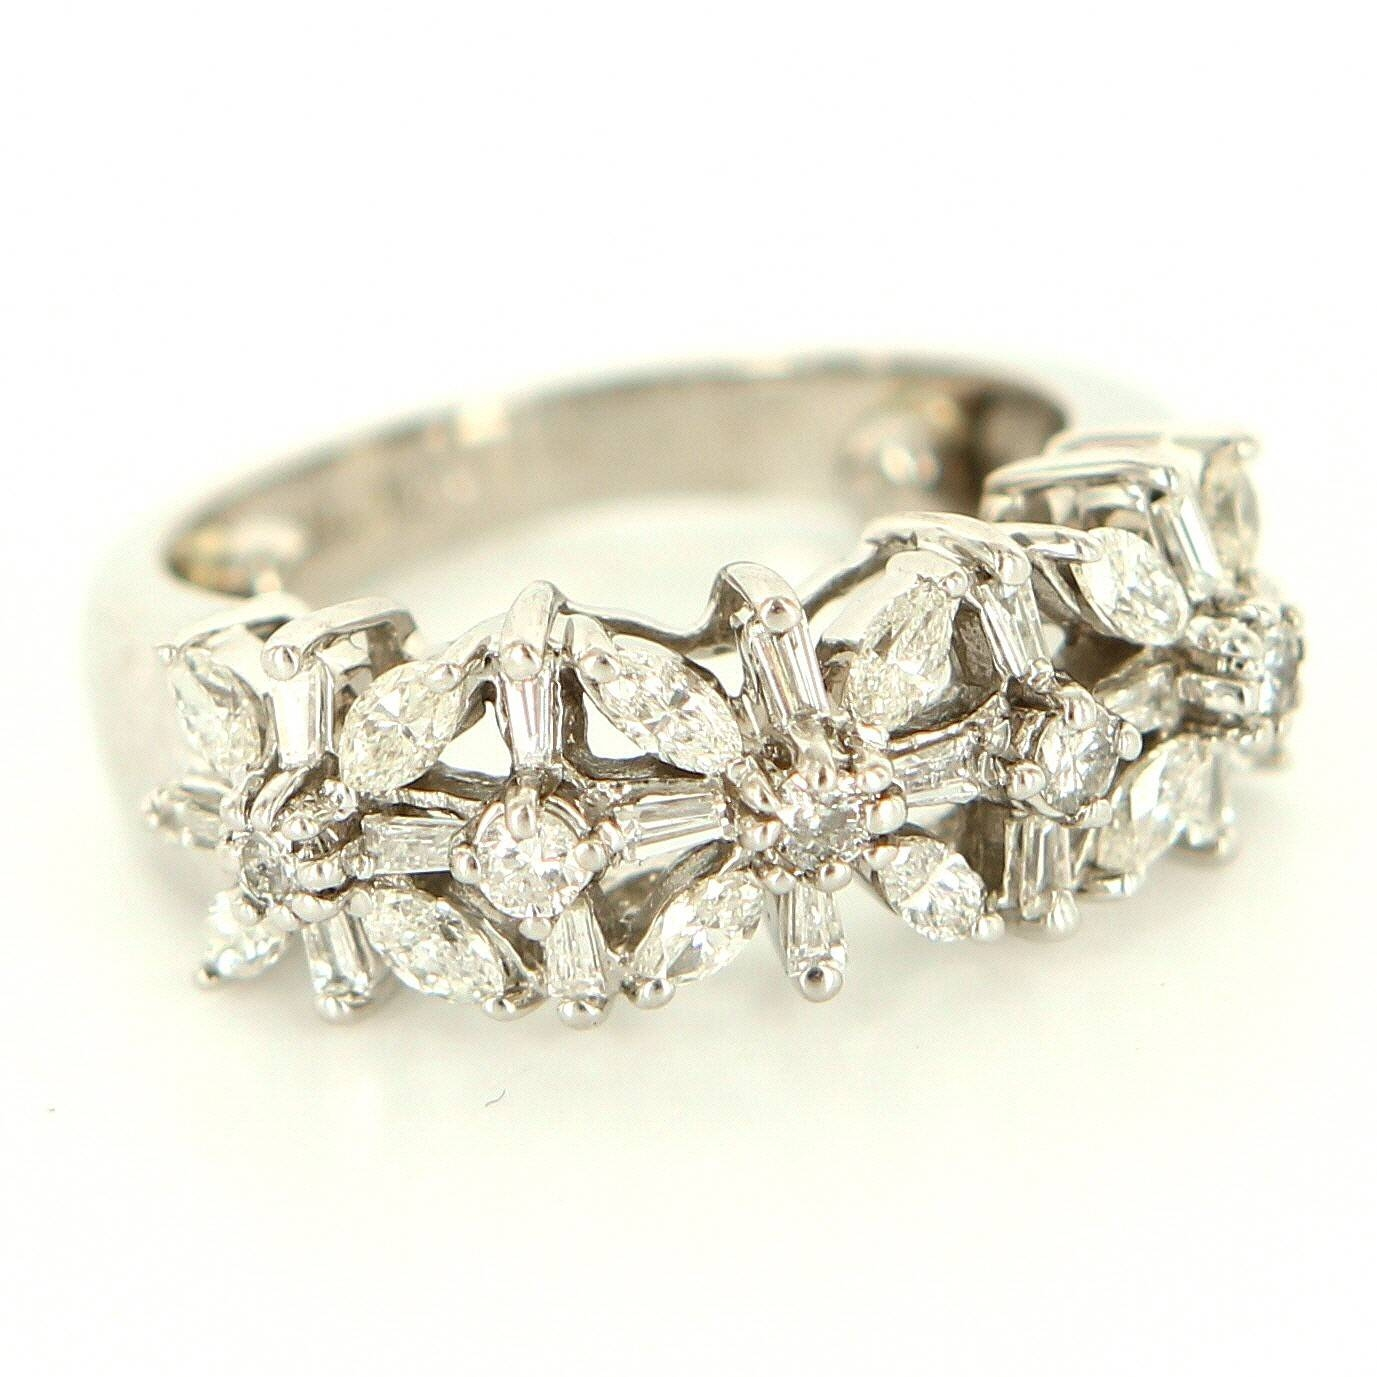 Vintage Anniversary Rings | Eternity Jewelry Pertaining To Most Current Vintage Anniversary Rings (Gallery 1 of 25)